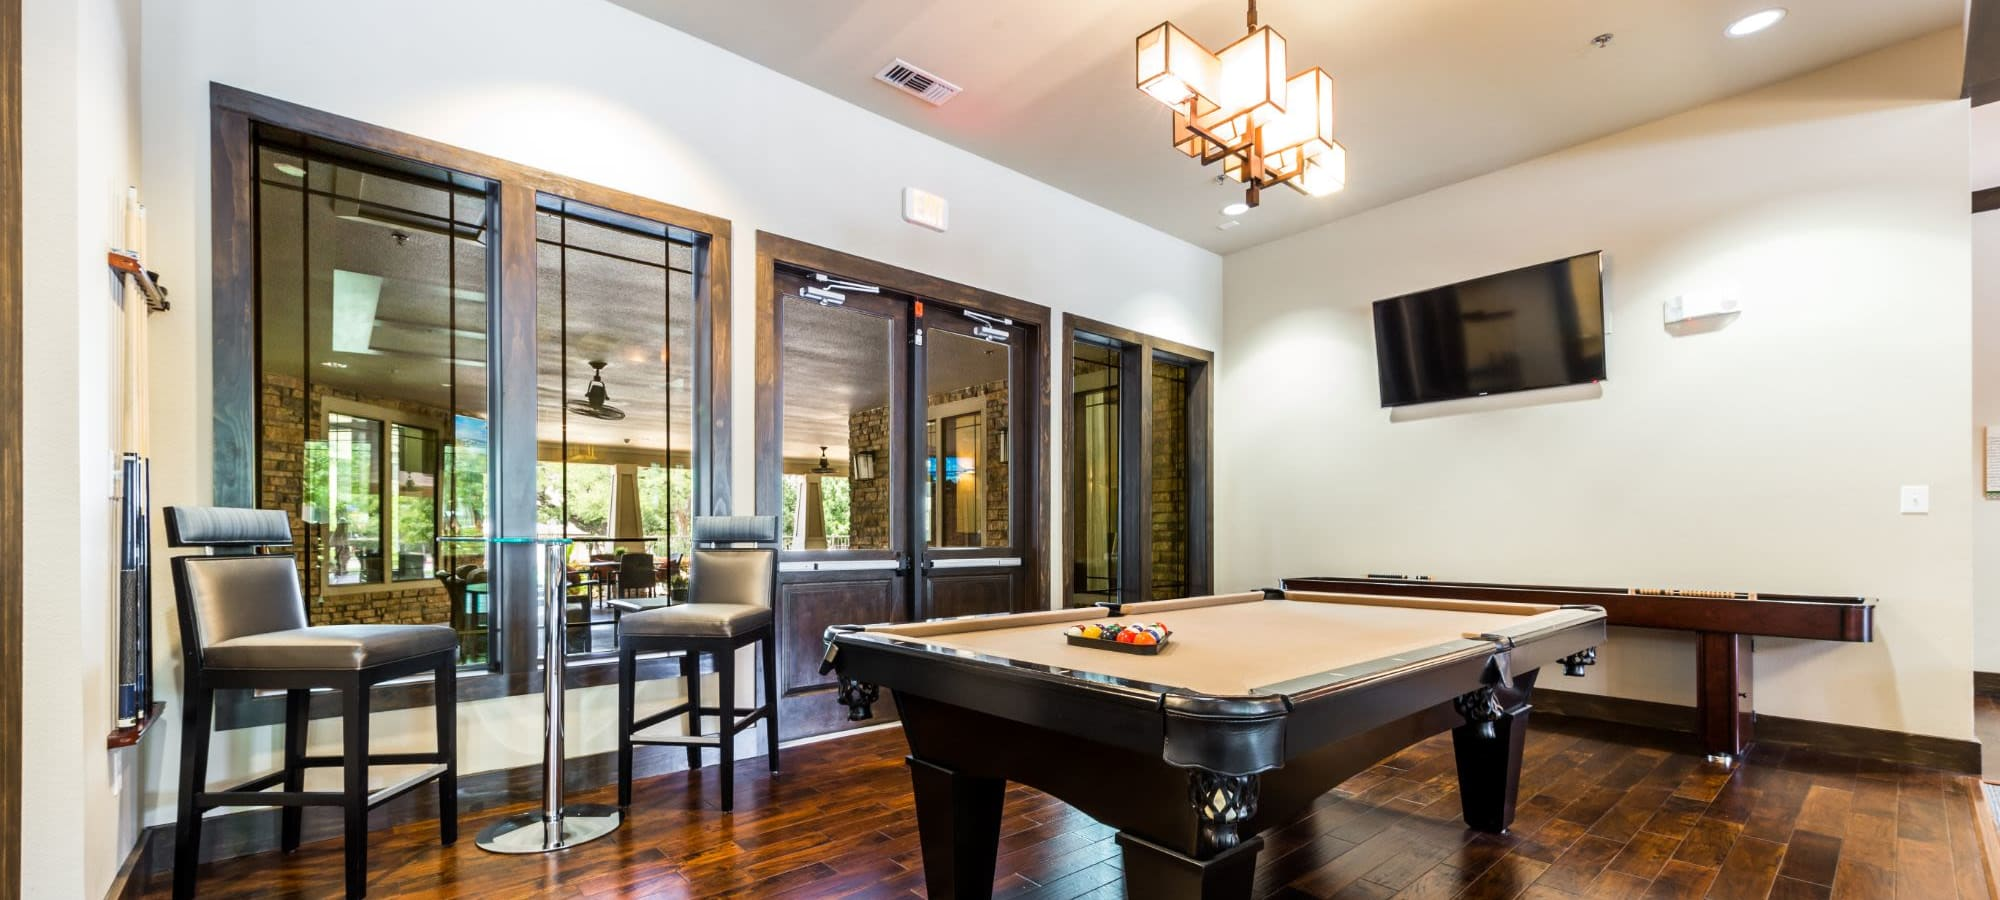 Schedule a tour of Marquis on Lakeline in Cedar Park, Texas